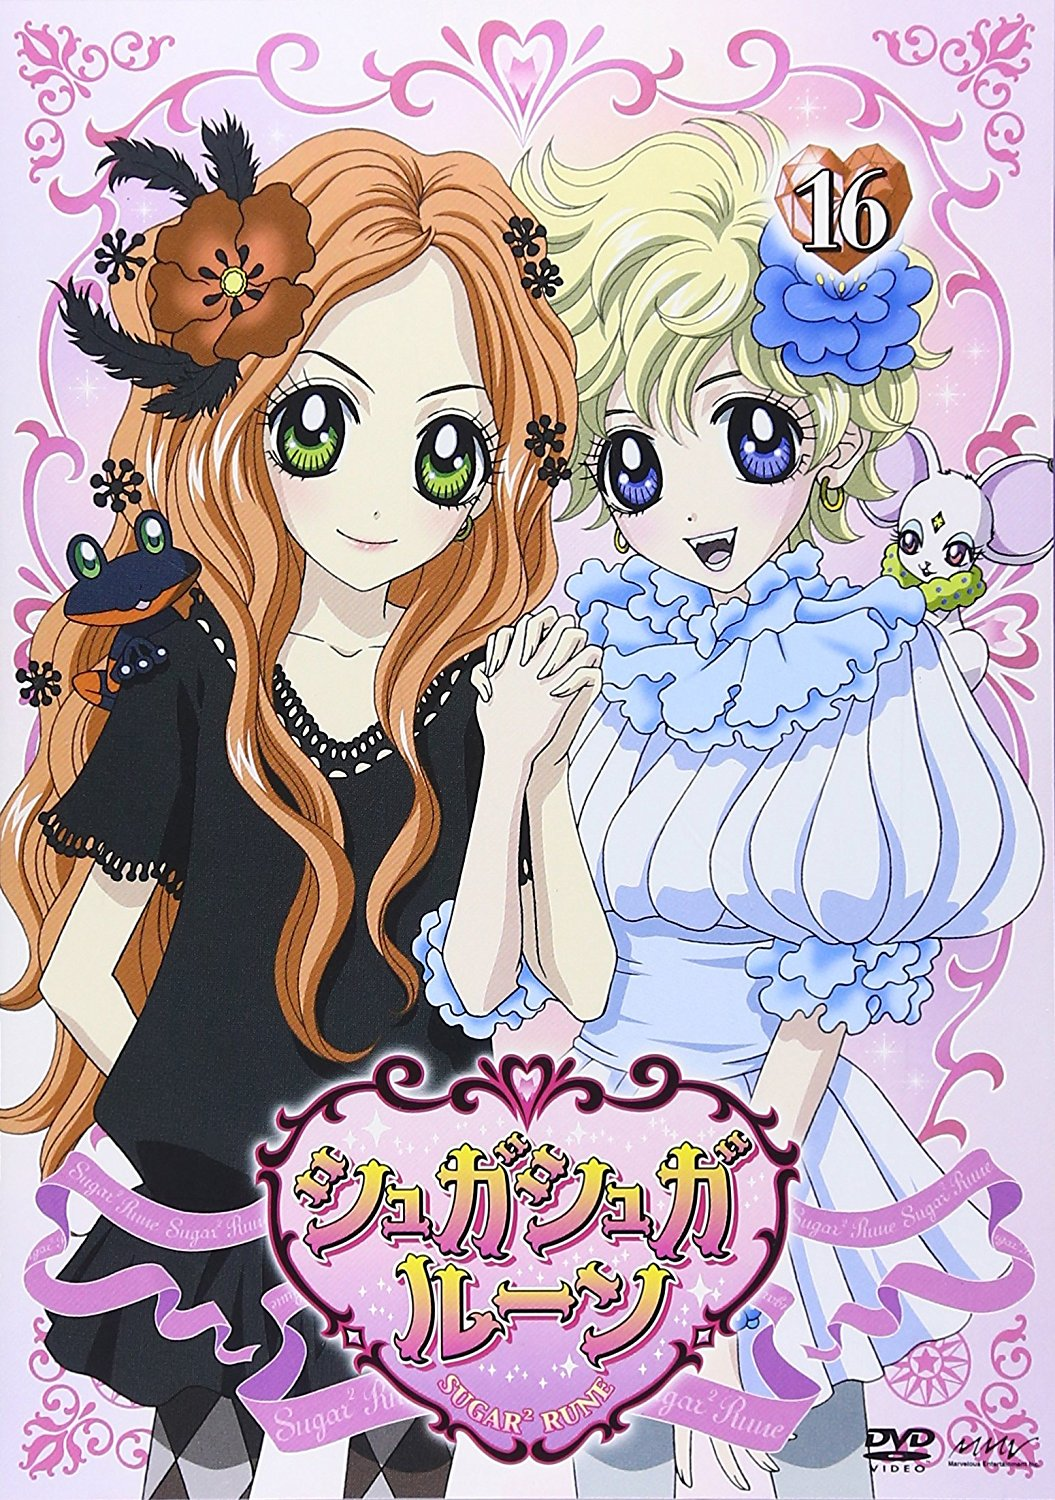 Questions About The Heart System In Sugar Sugar Rune Episode